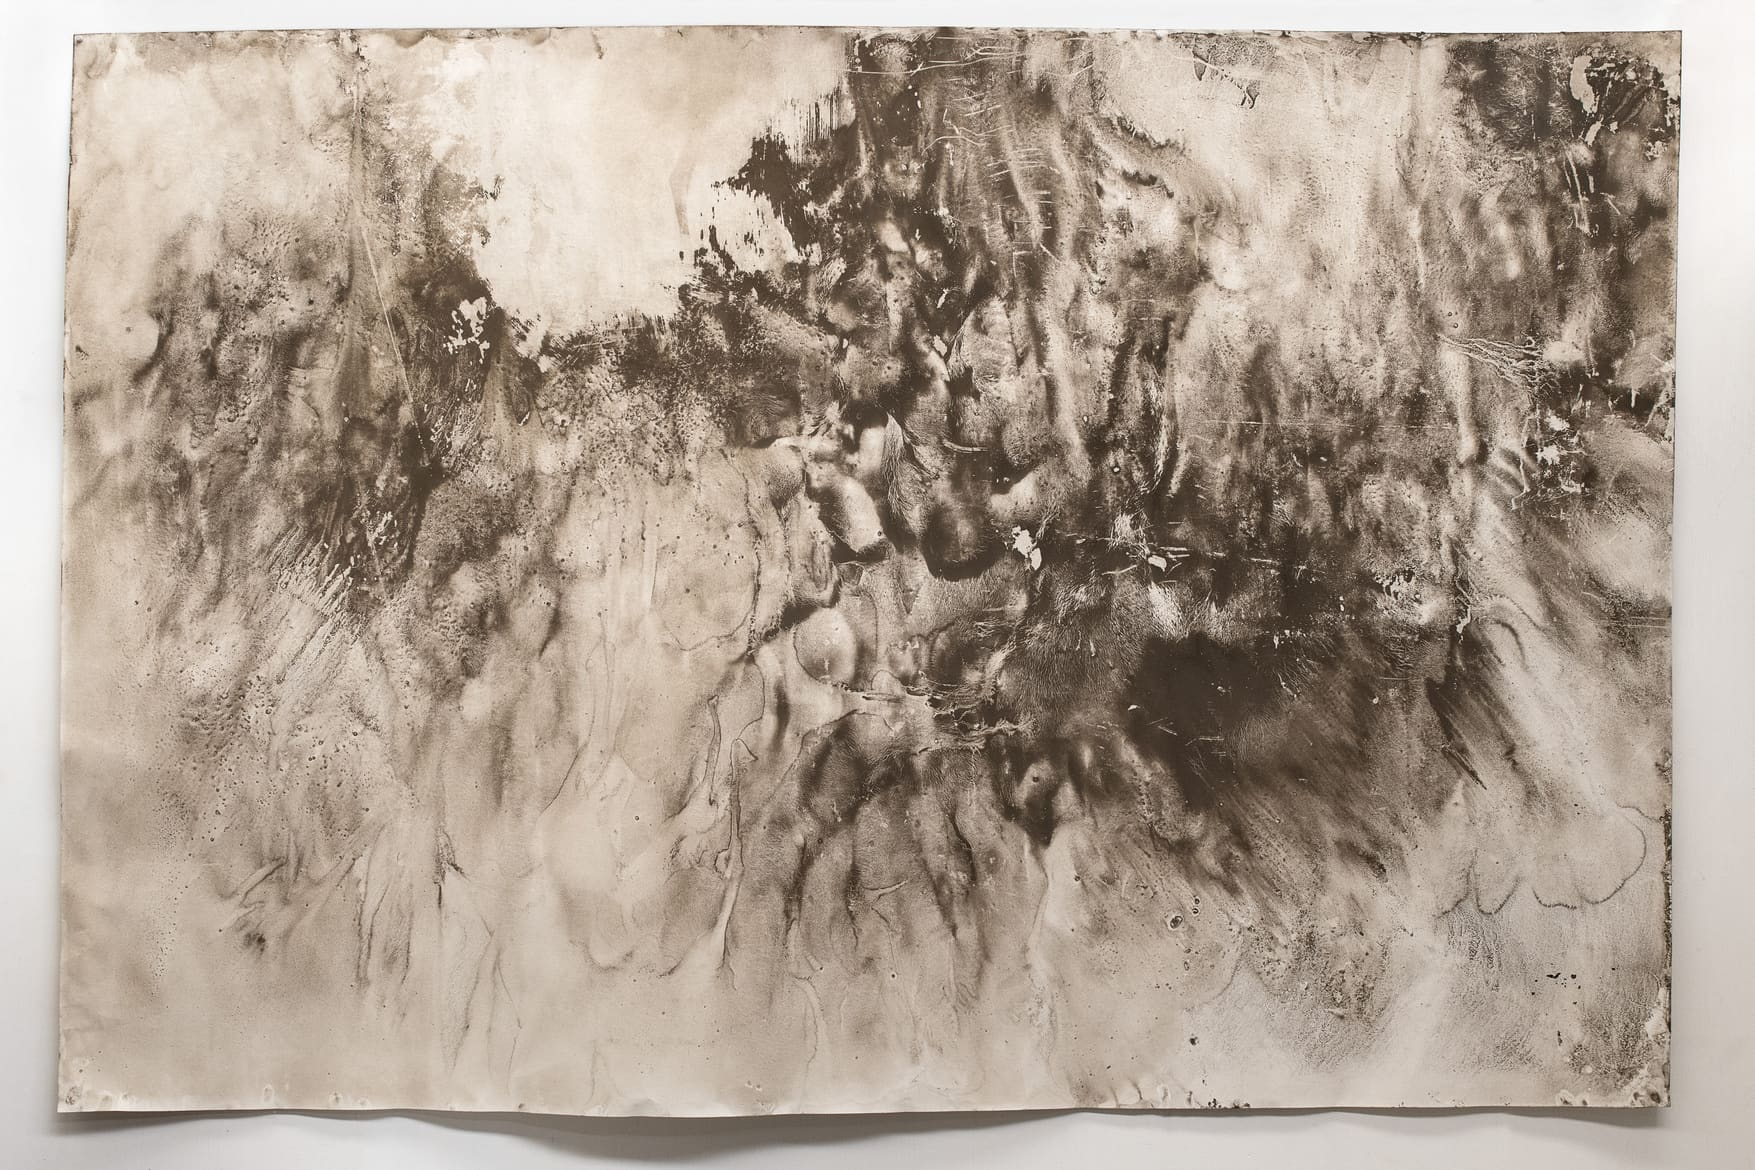 Julia Davis and Lisa Jones, Thresholds: a chorus #03/05/19, 2019, Tunnel residue on Heritage rag 320gsm paper 240 x 160 cm. The Copyright Agency's Cultural Fund and supported by Sydney Trains and  GREYSPACE.